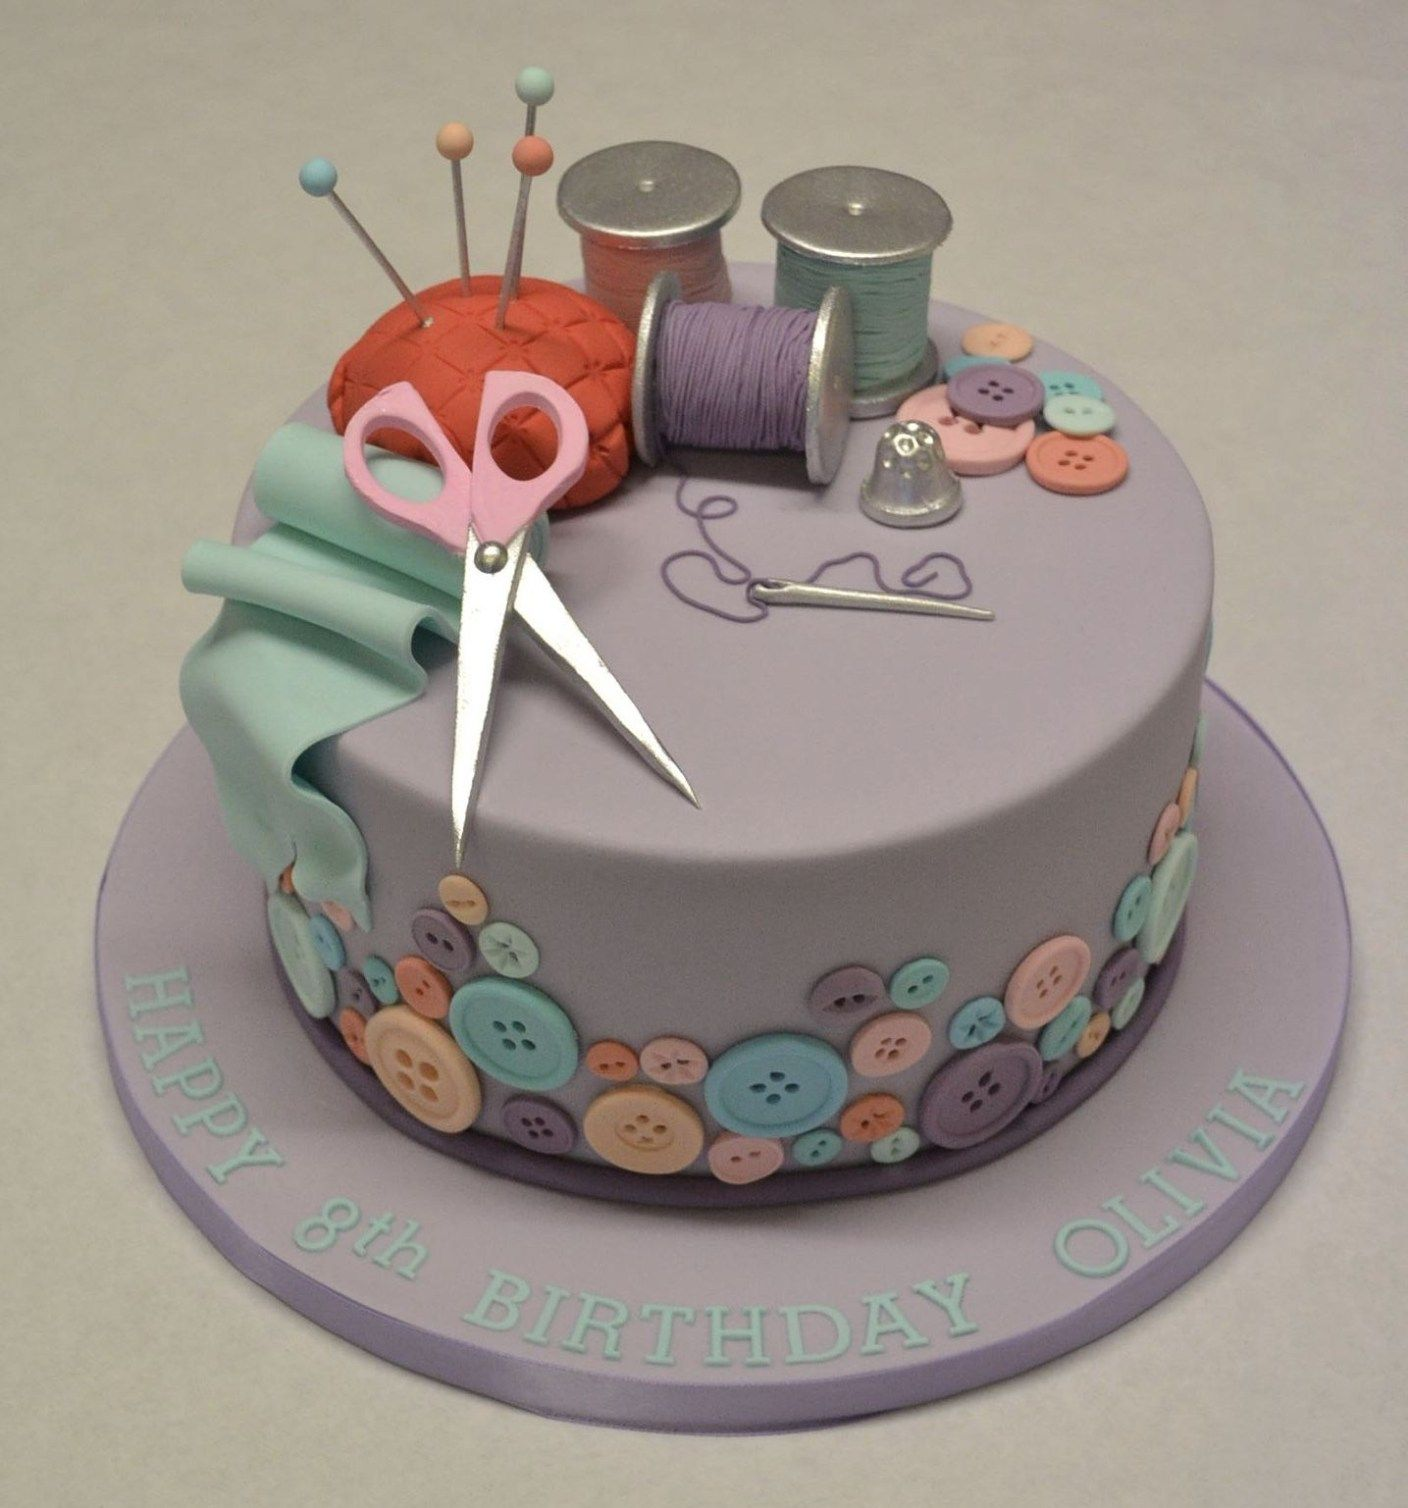 35+ Marvelous Picture of Stitch Birthday Cake #celebrationcakes